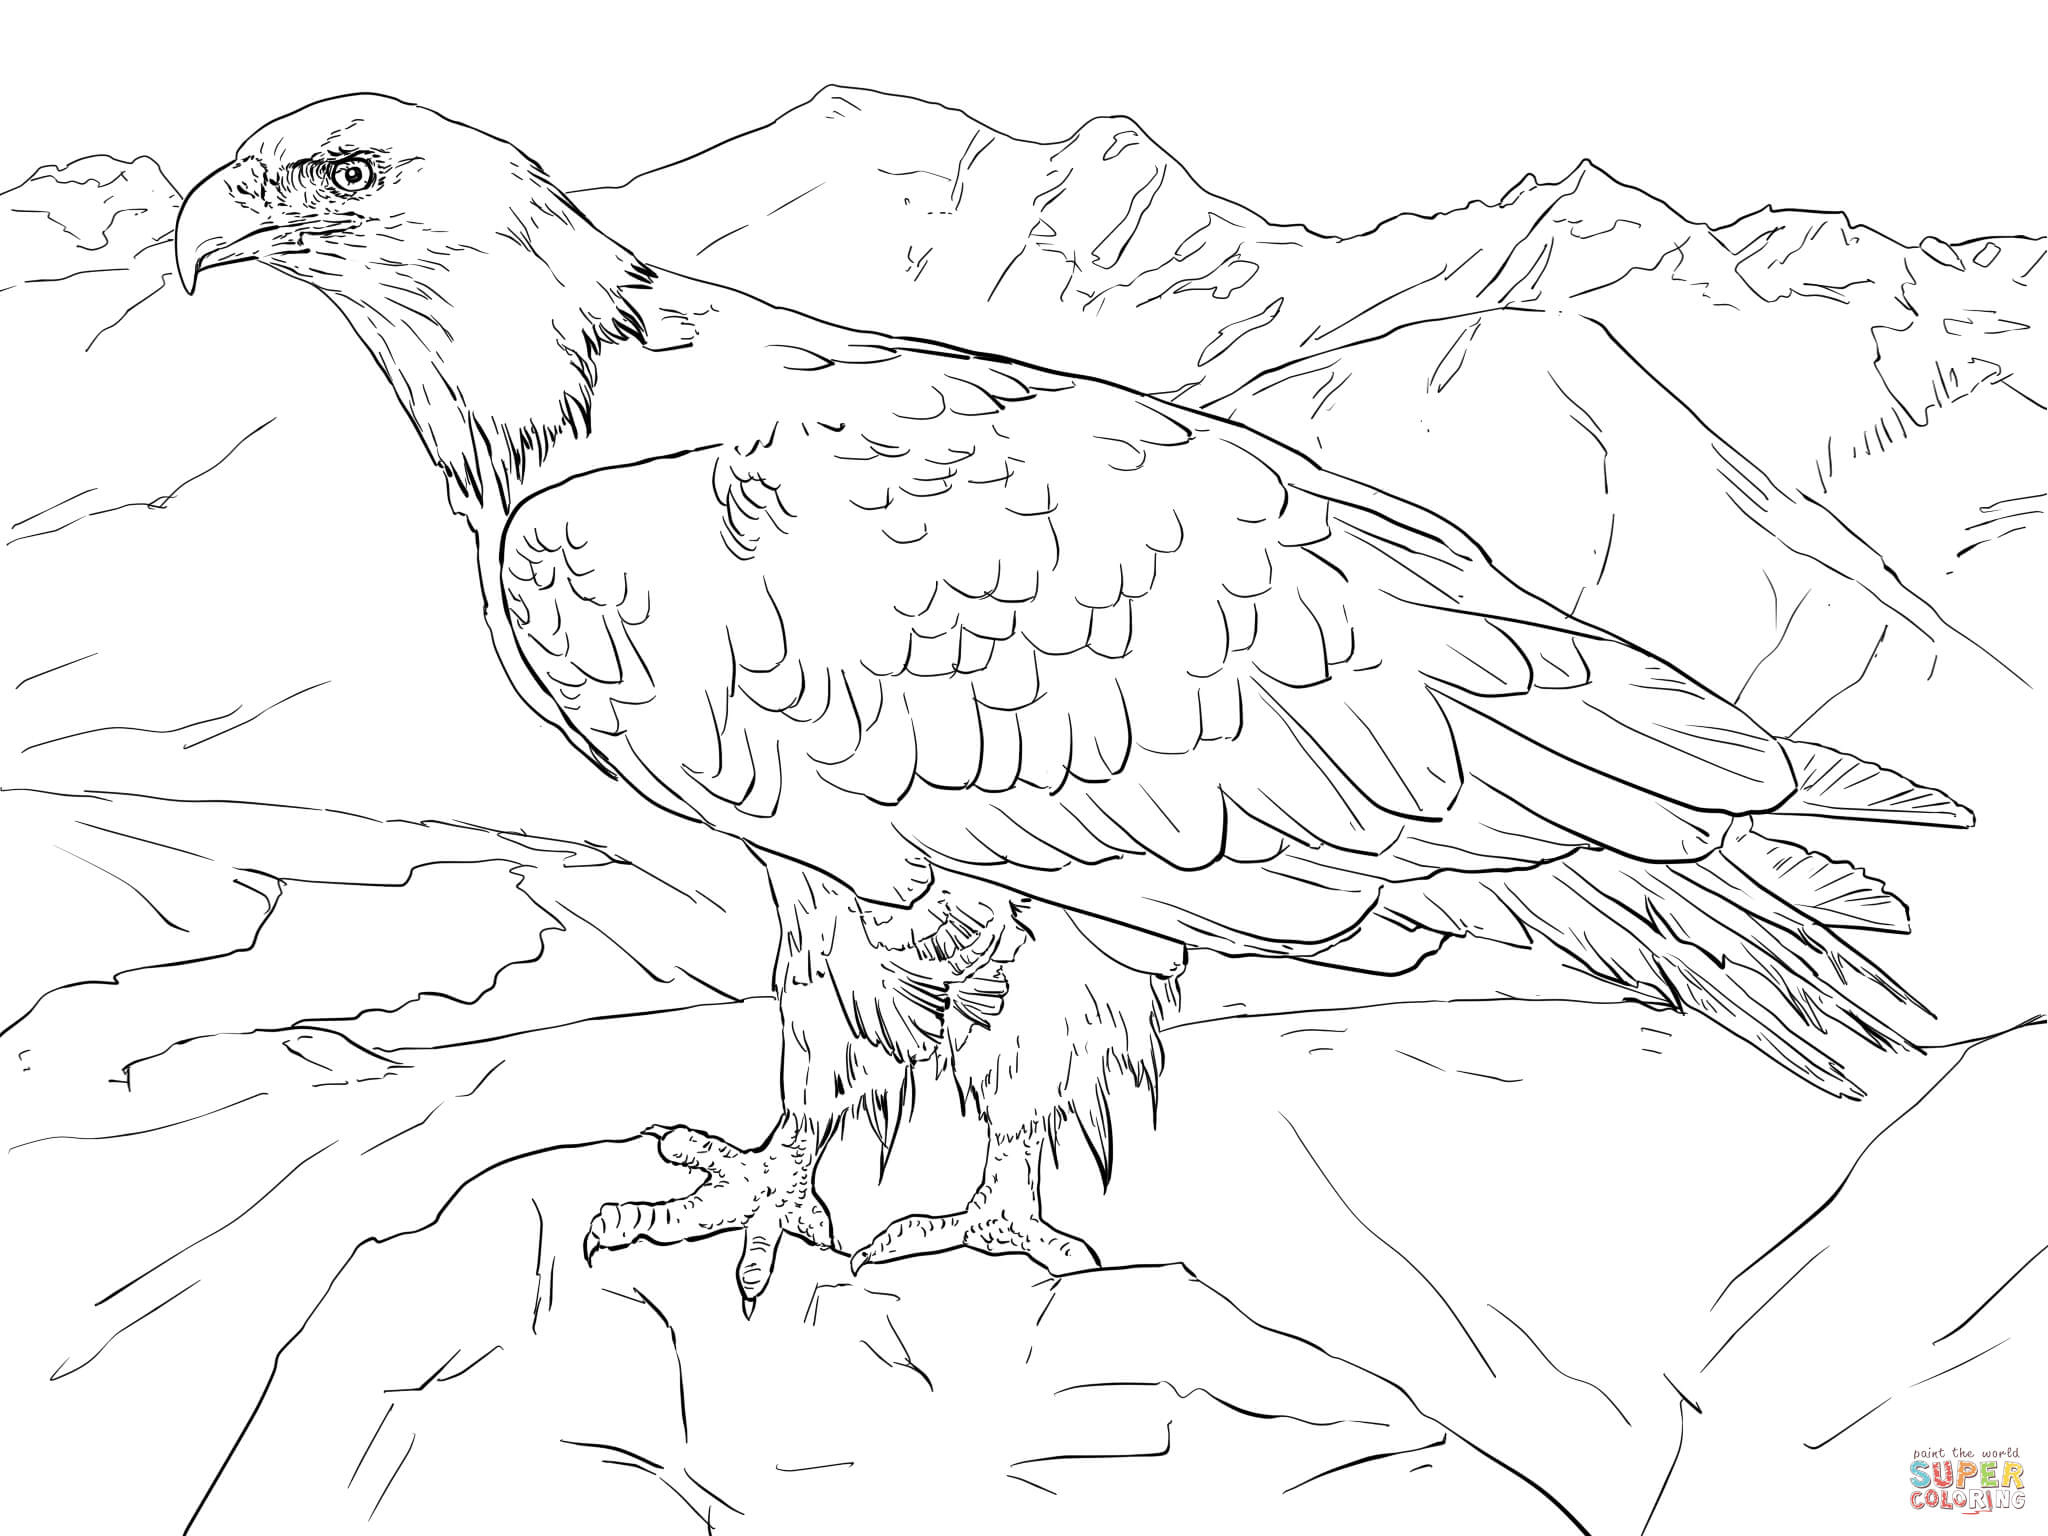 Bald Eagle From Alaska Coloring Page | Free Printable Coloring Pages - Free Printable Pictures Of Alaska